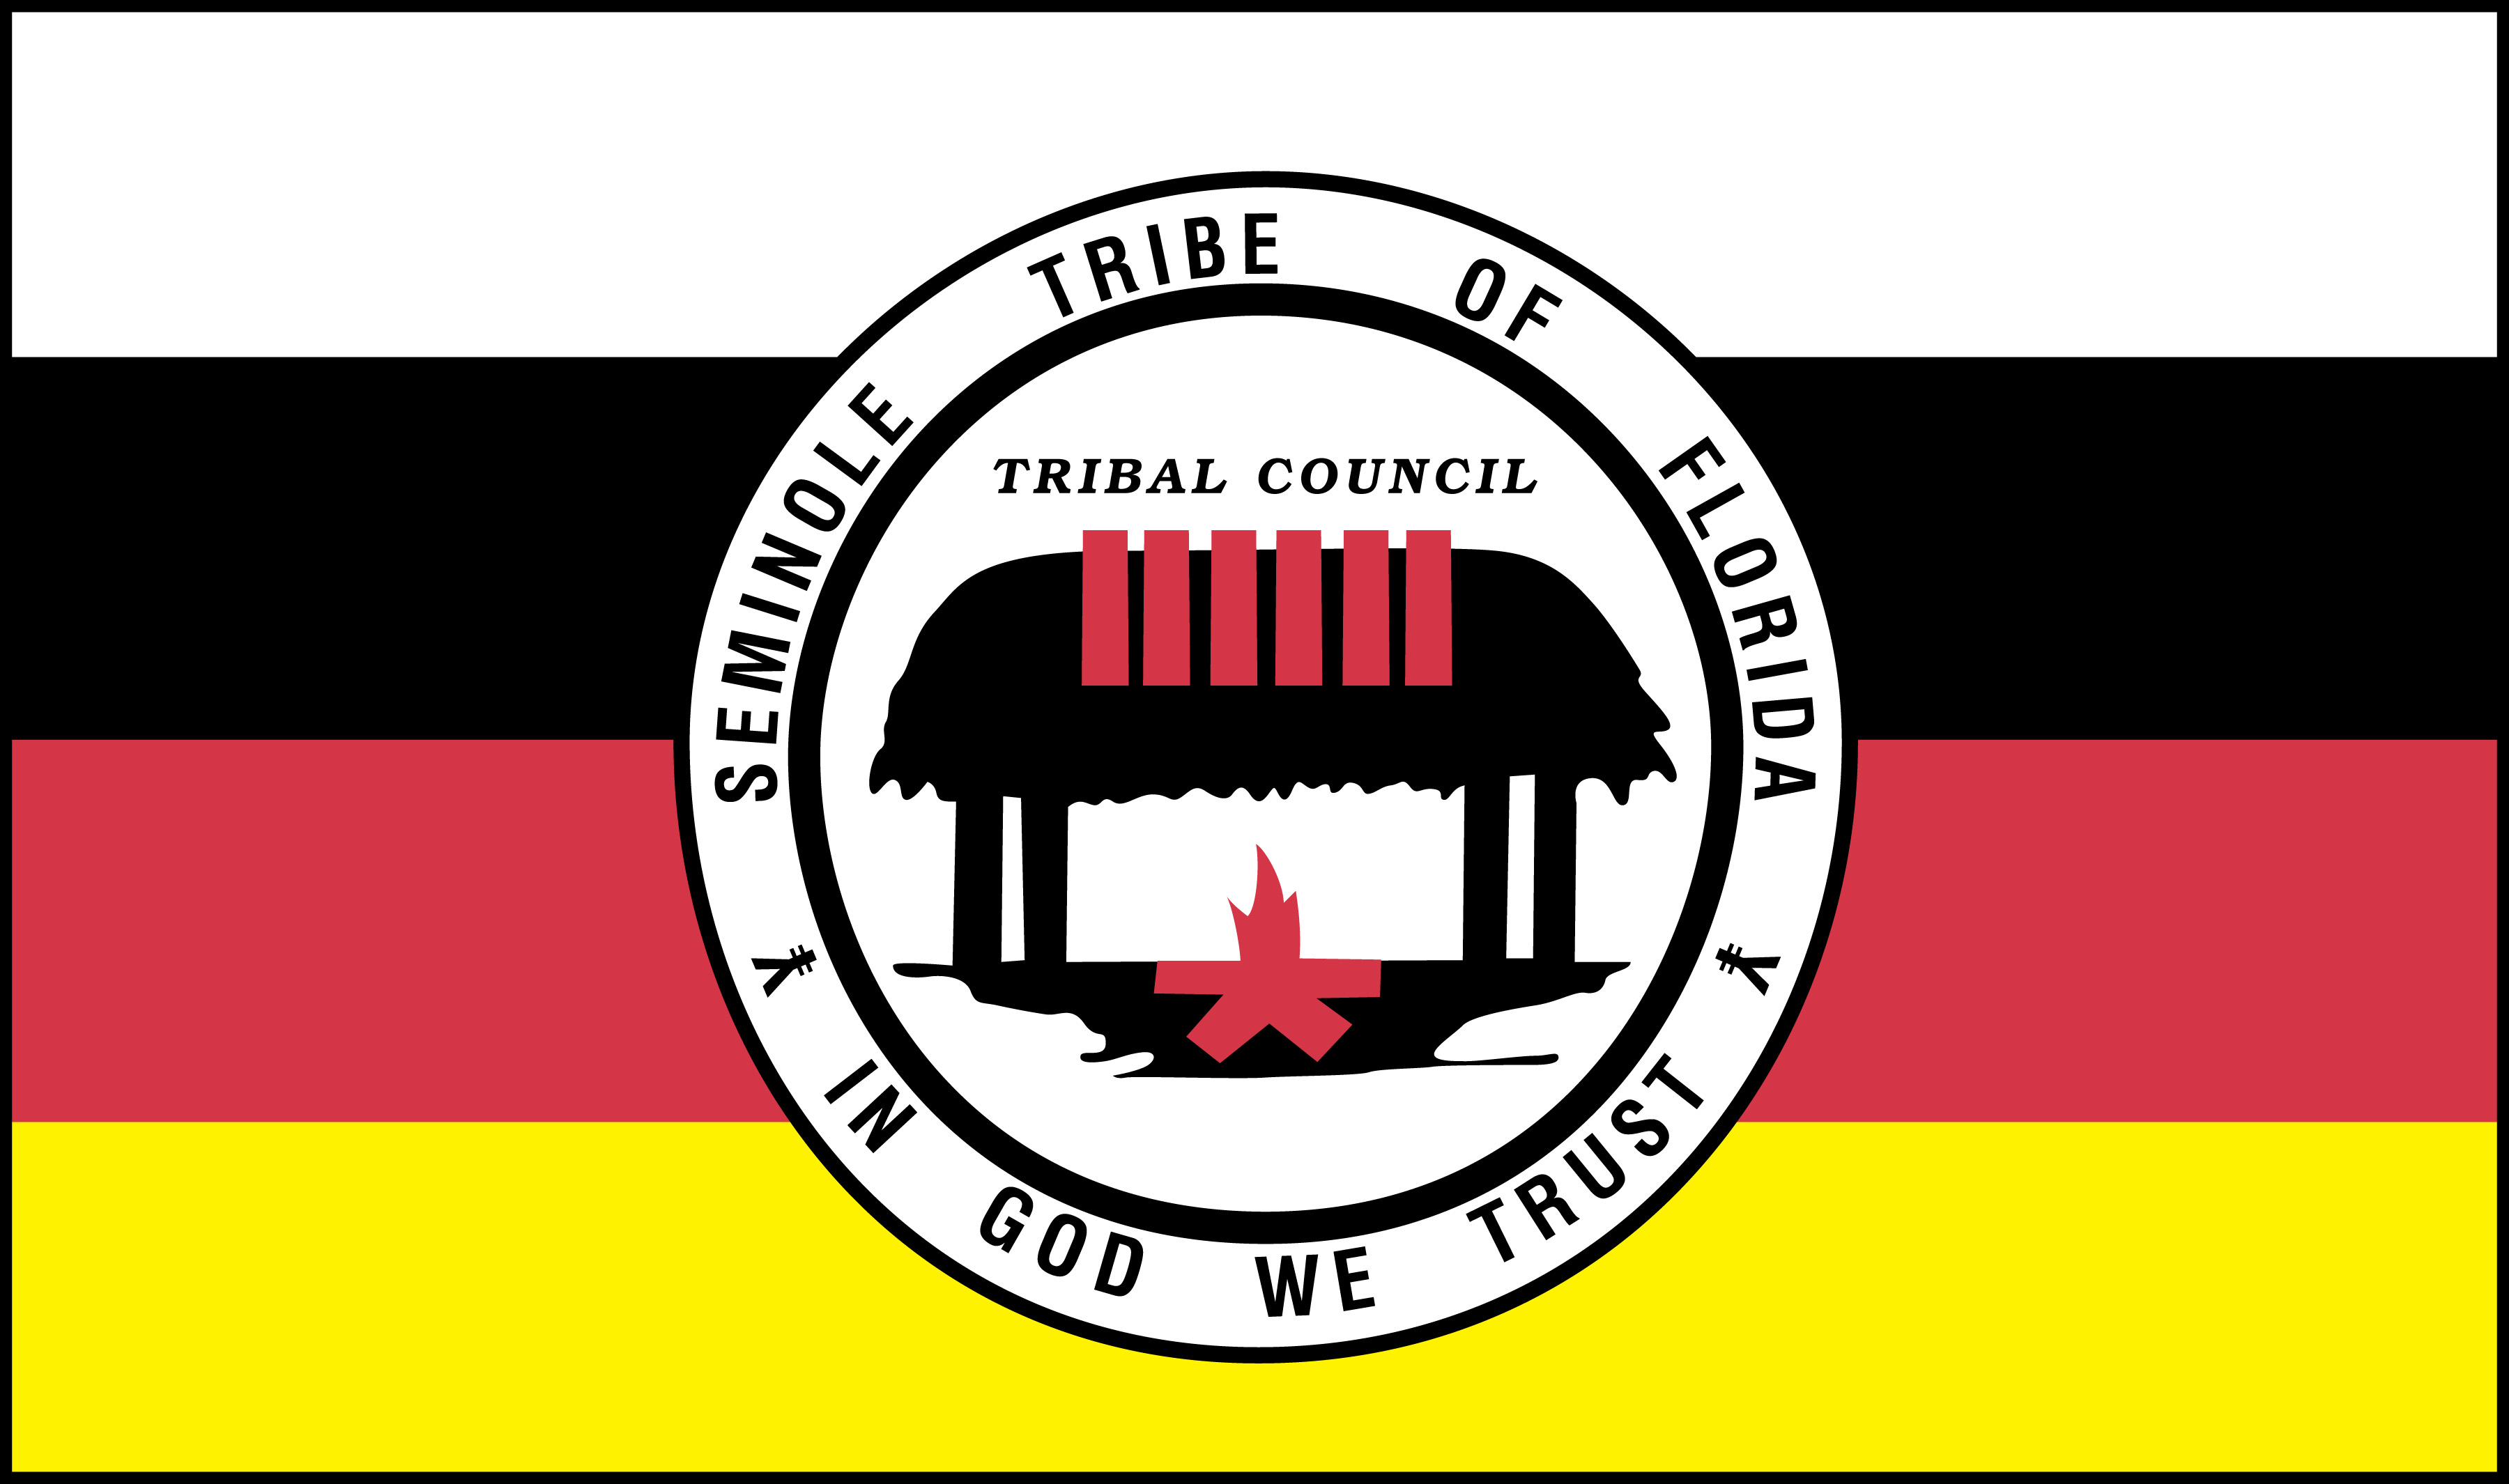 Supreme Court won't take up Seminole Tribe's taxation case